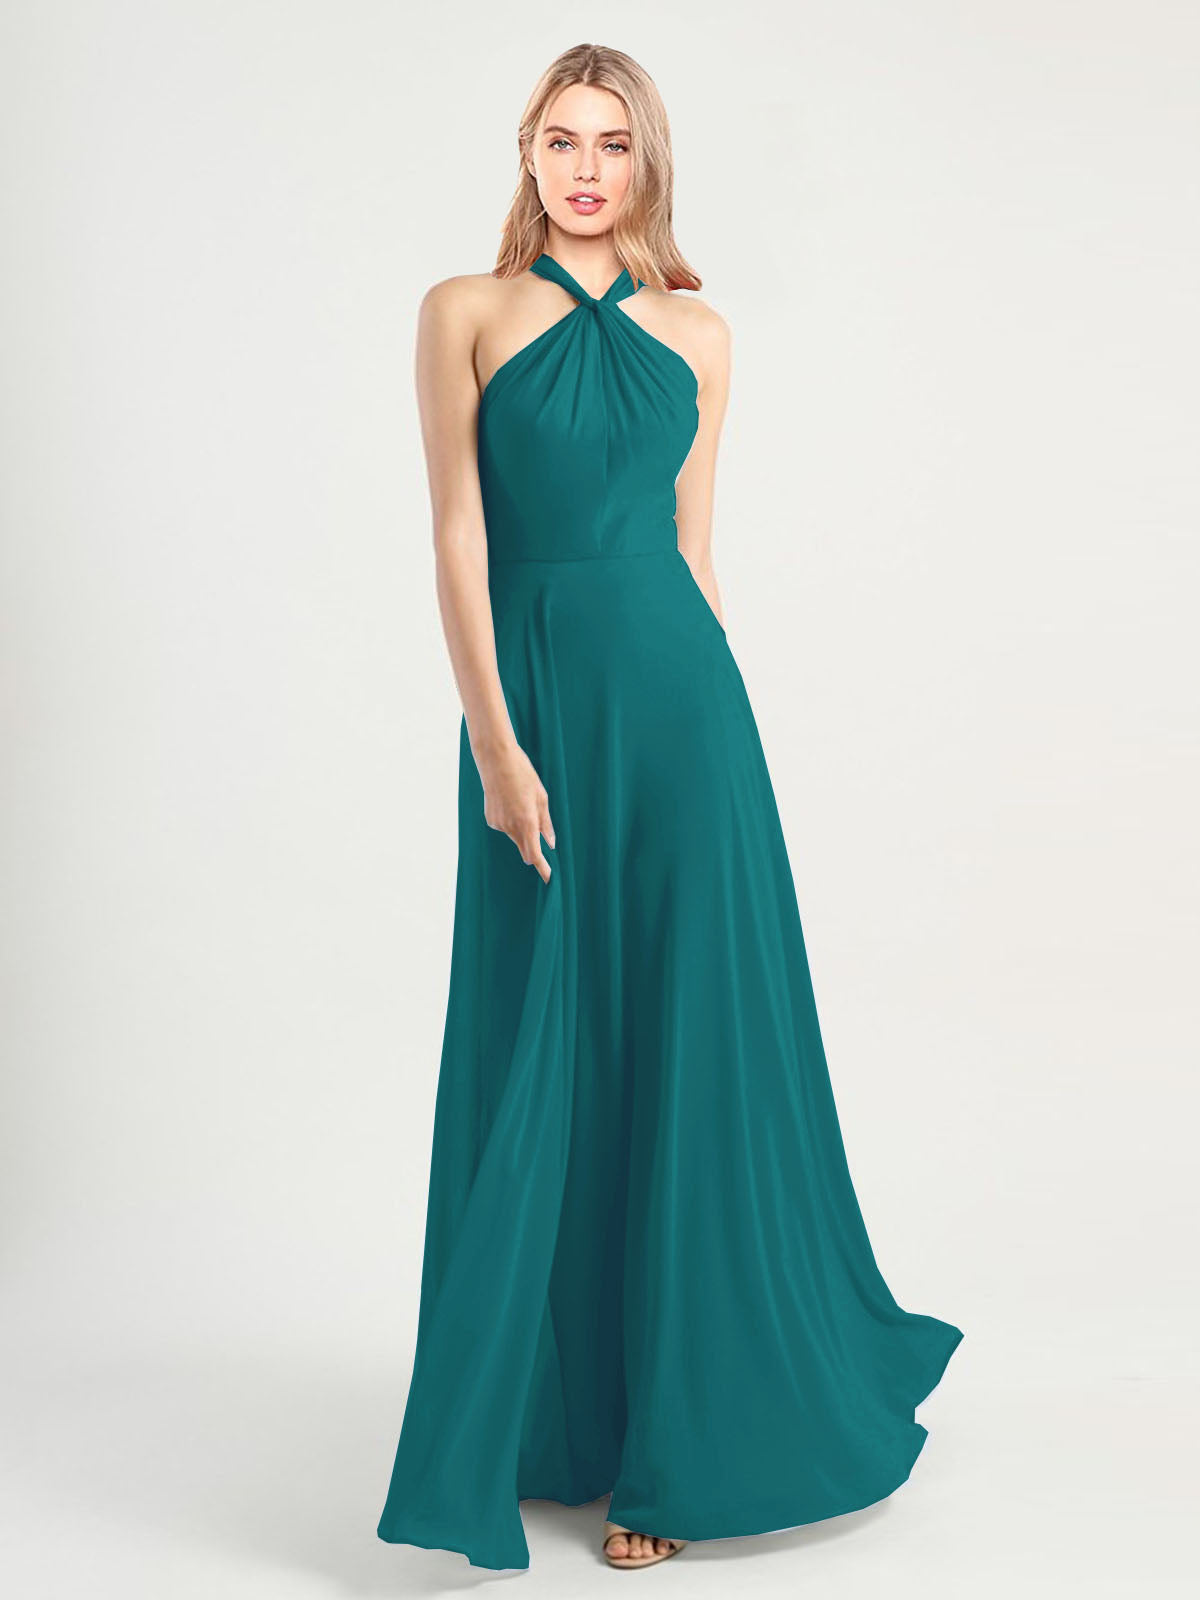 Long A-Line High Neck, Halter Sleeveless Hunter Chiffon Bridesmaid Dress Yoli